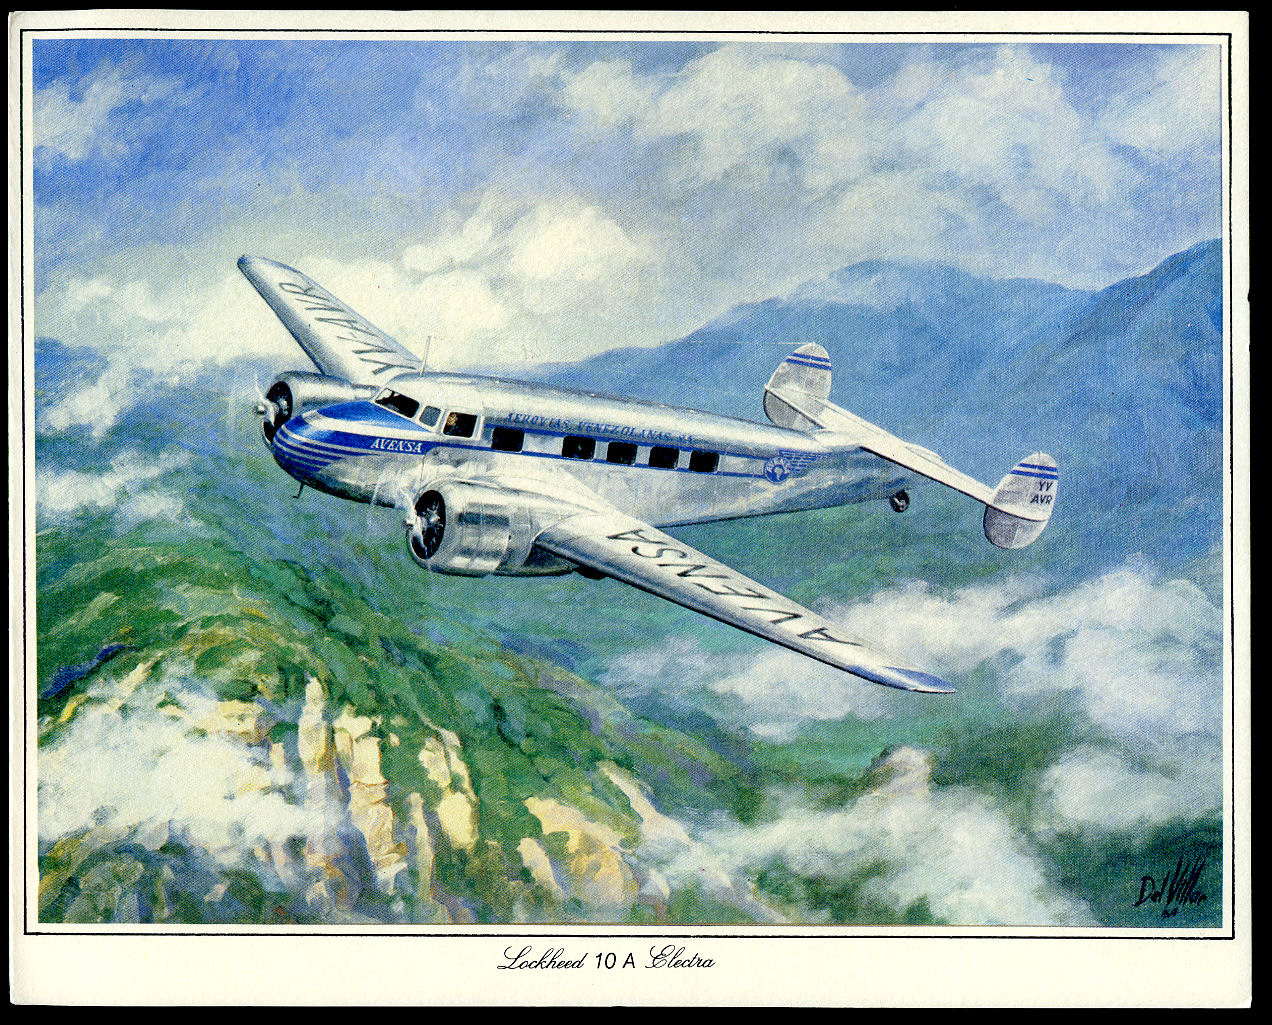 AEROVÍAS VENEZOLANAS SOCIEDAD ANONIMA. [THE FRONT COVER IS FROM A PAINTING BY ILLUSTRATOR DEL VILLAR]. - Avensa (Aerovías Venezolanas Sociedad Anonima) Venezuela Operational 1943-2004 | First Class Menu from 1984 | Lockheed 10A Electra.